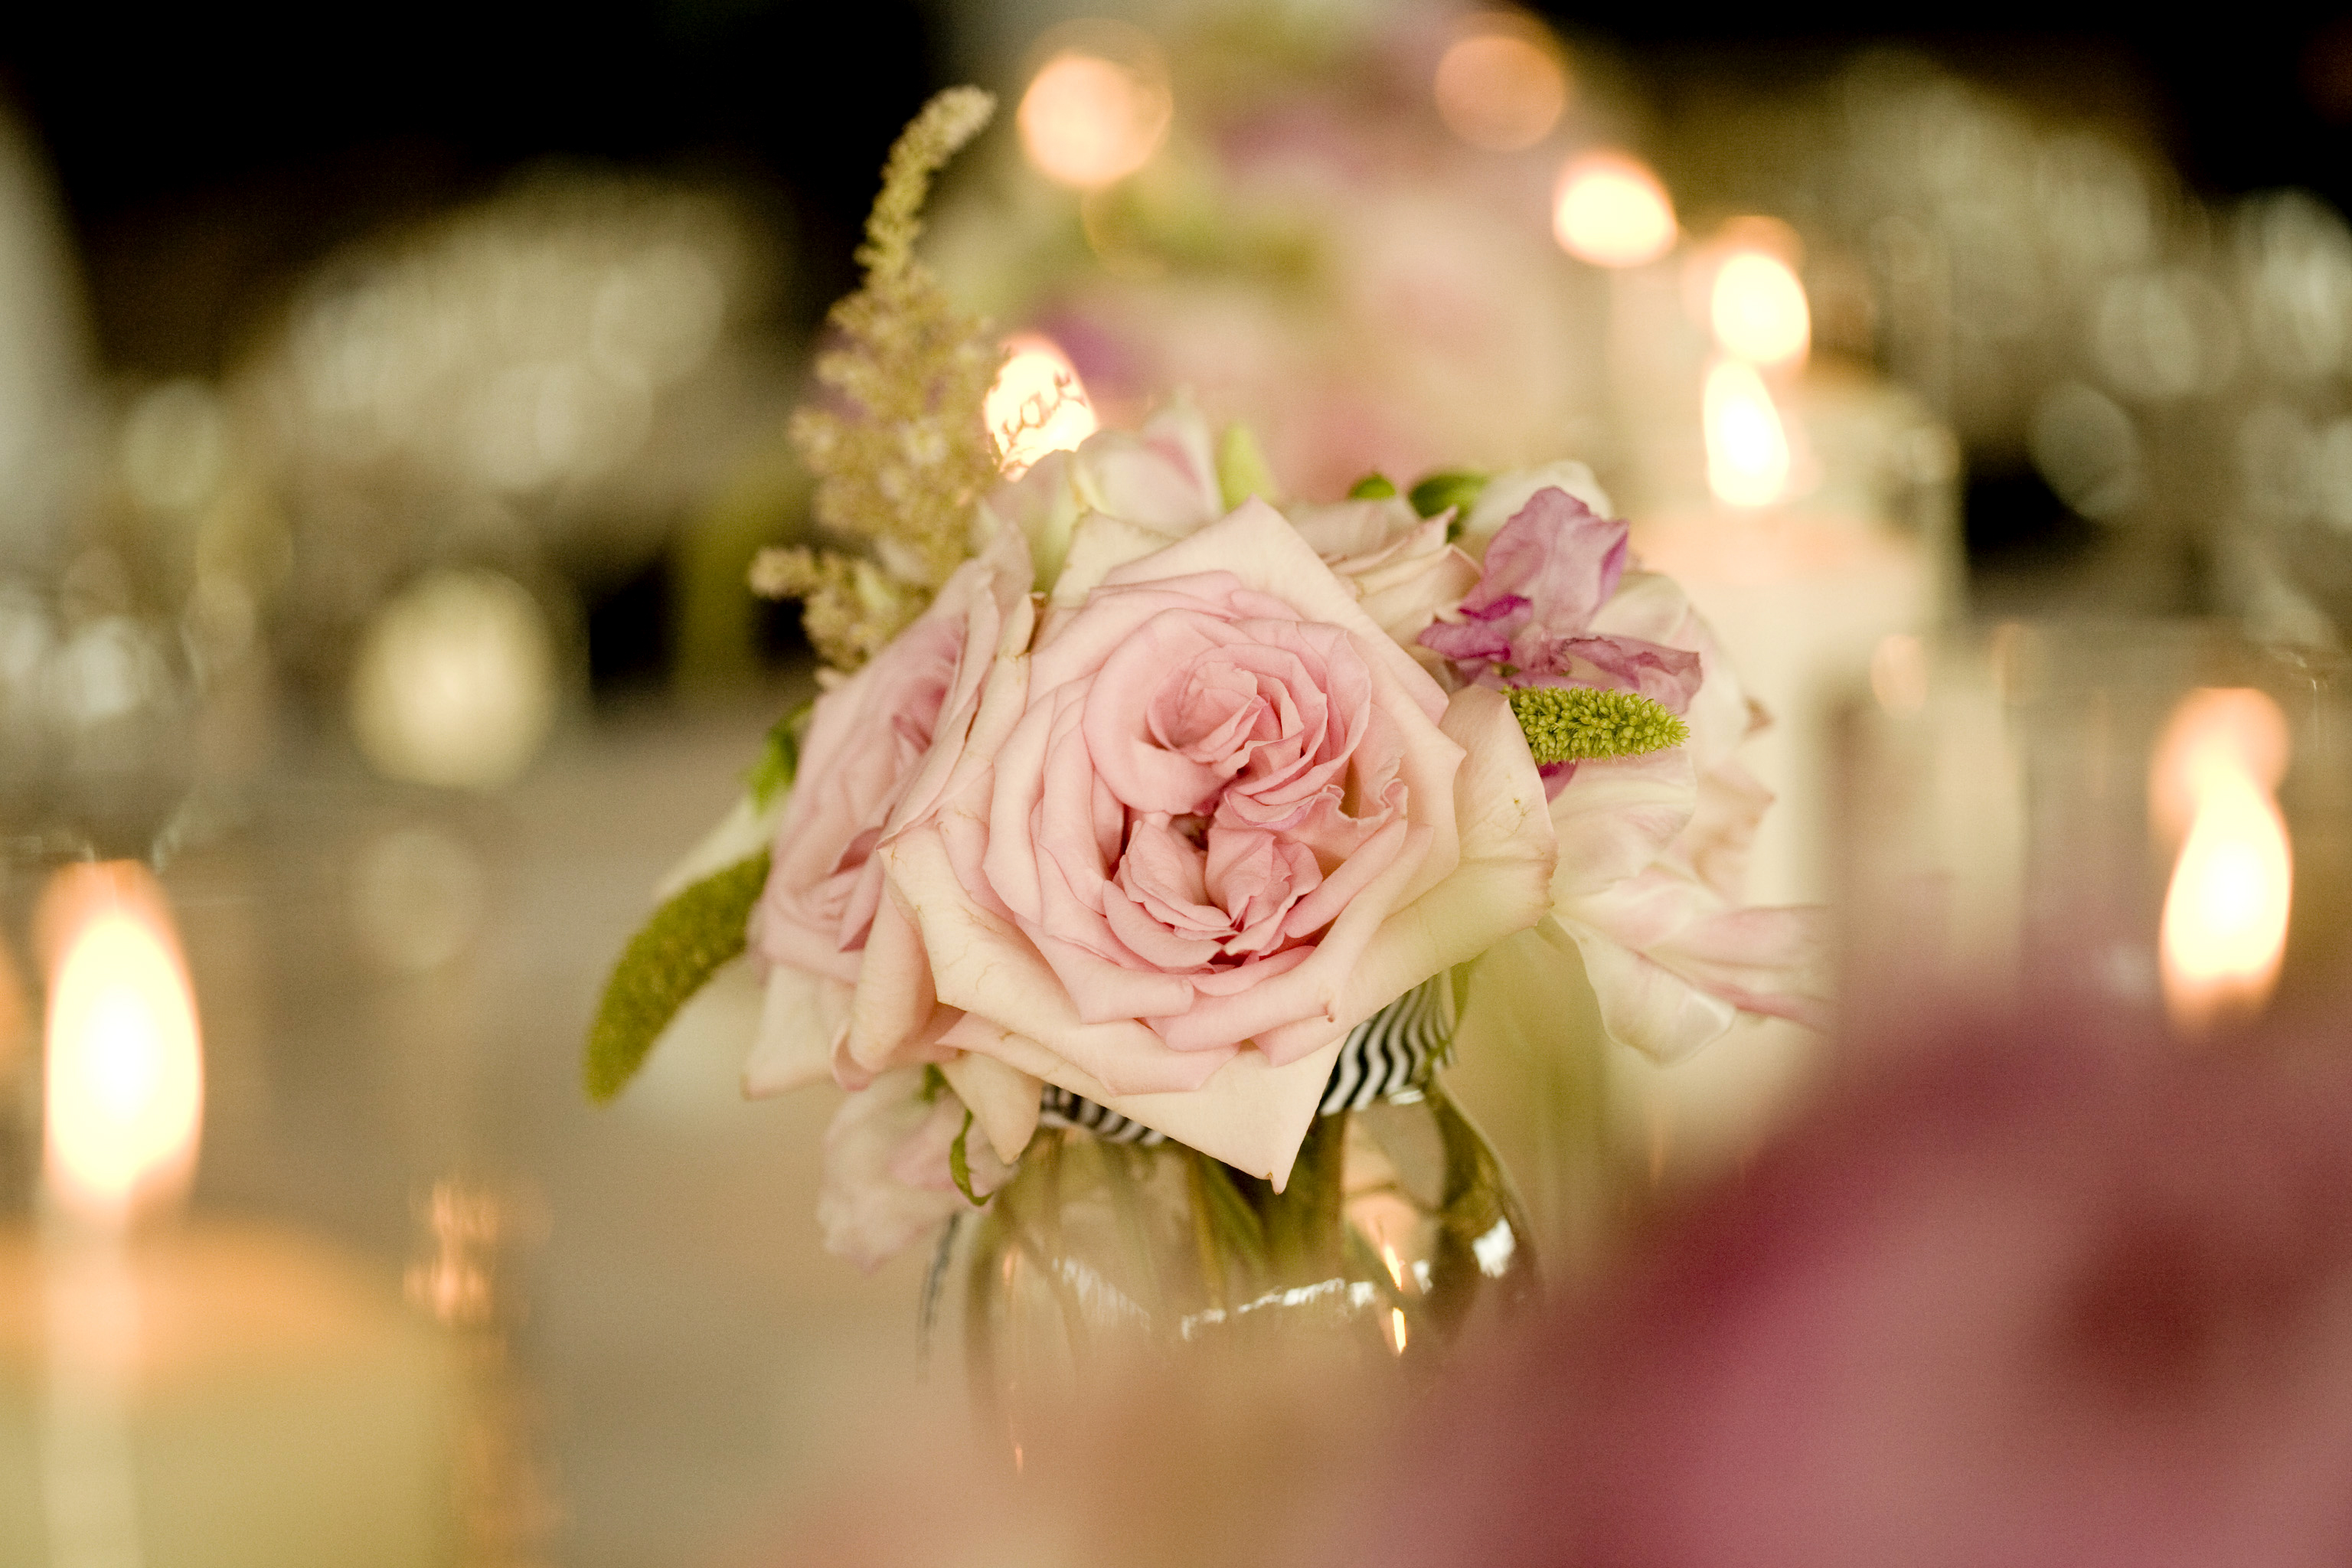 Reception, Flowers & Decor, pink, Candles, Flowers, Table, Peonies, A taylor made wedding